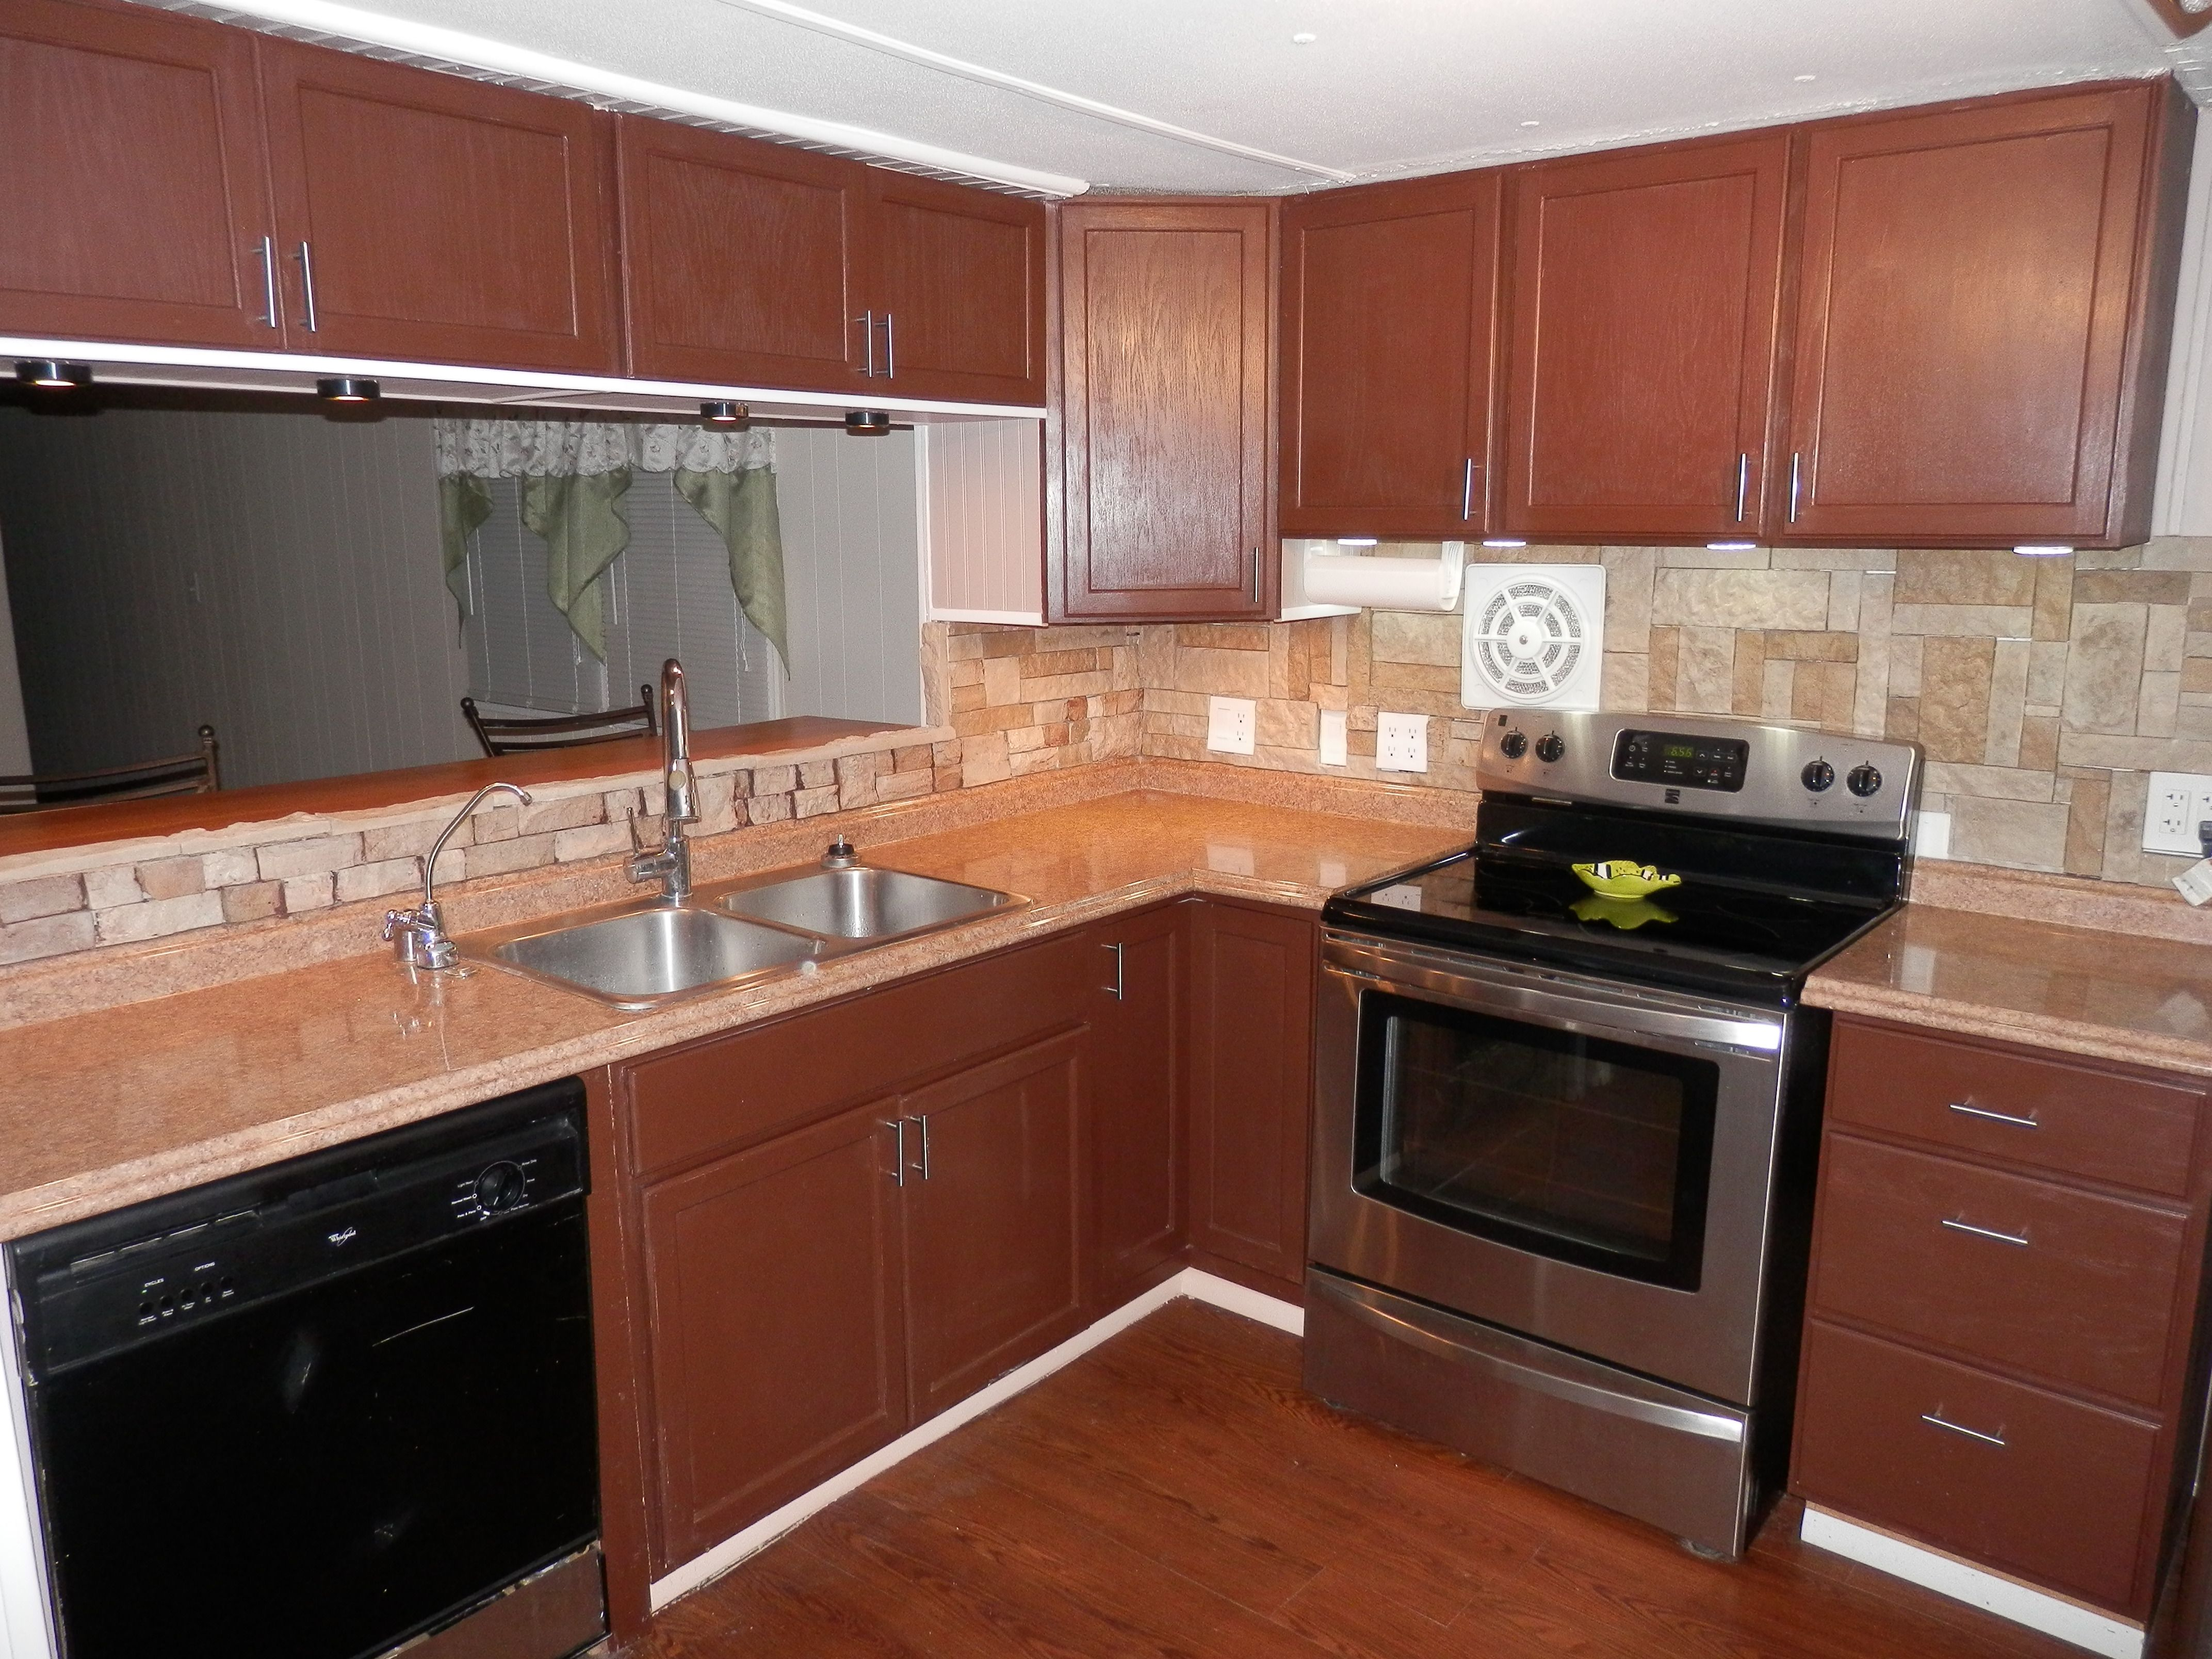 Mobile Home Kitchen Remodel Sink Spray Hose Replacement 1973 Done With 2000 Budget Prescott Remodeling Walls Before